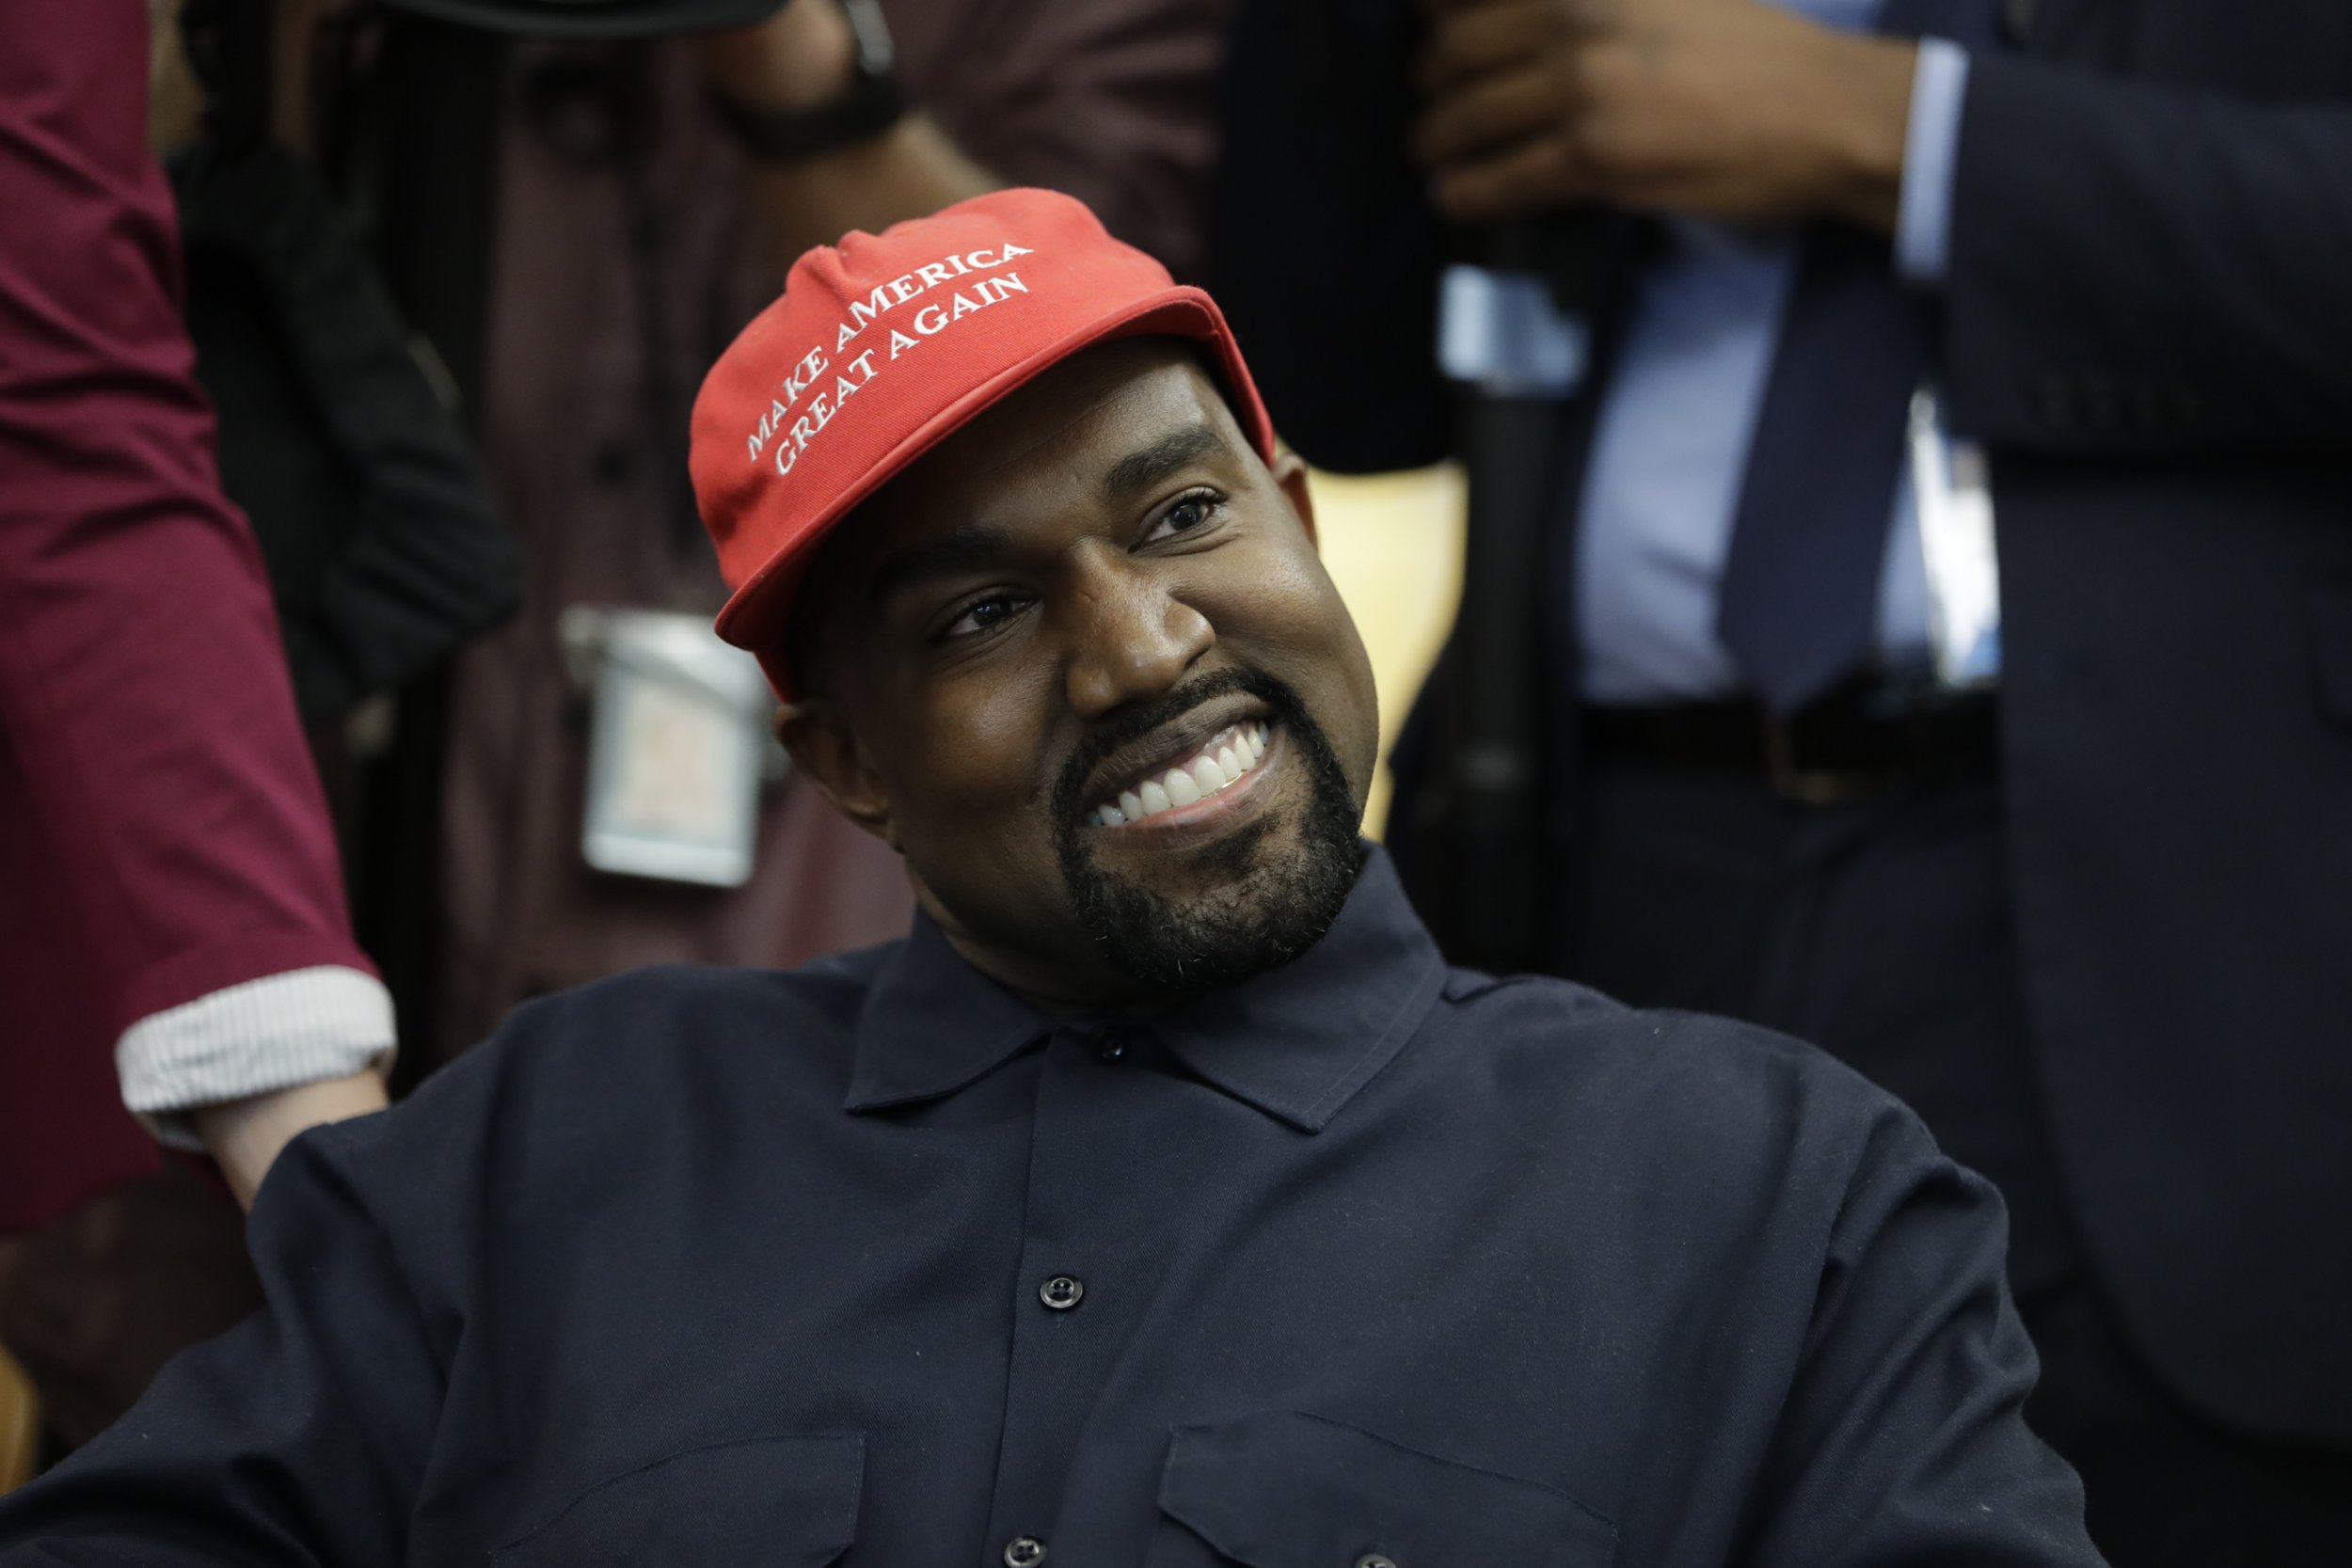 Rapper Kanye West is seated while meeting with President Donald Trump and others in the Oval Office of the White House, Thursday, Oct. 11, 2018, in Washington. (AP Photo/Evan Vucci)